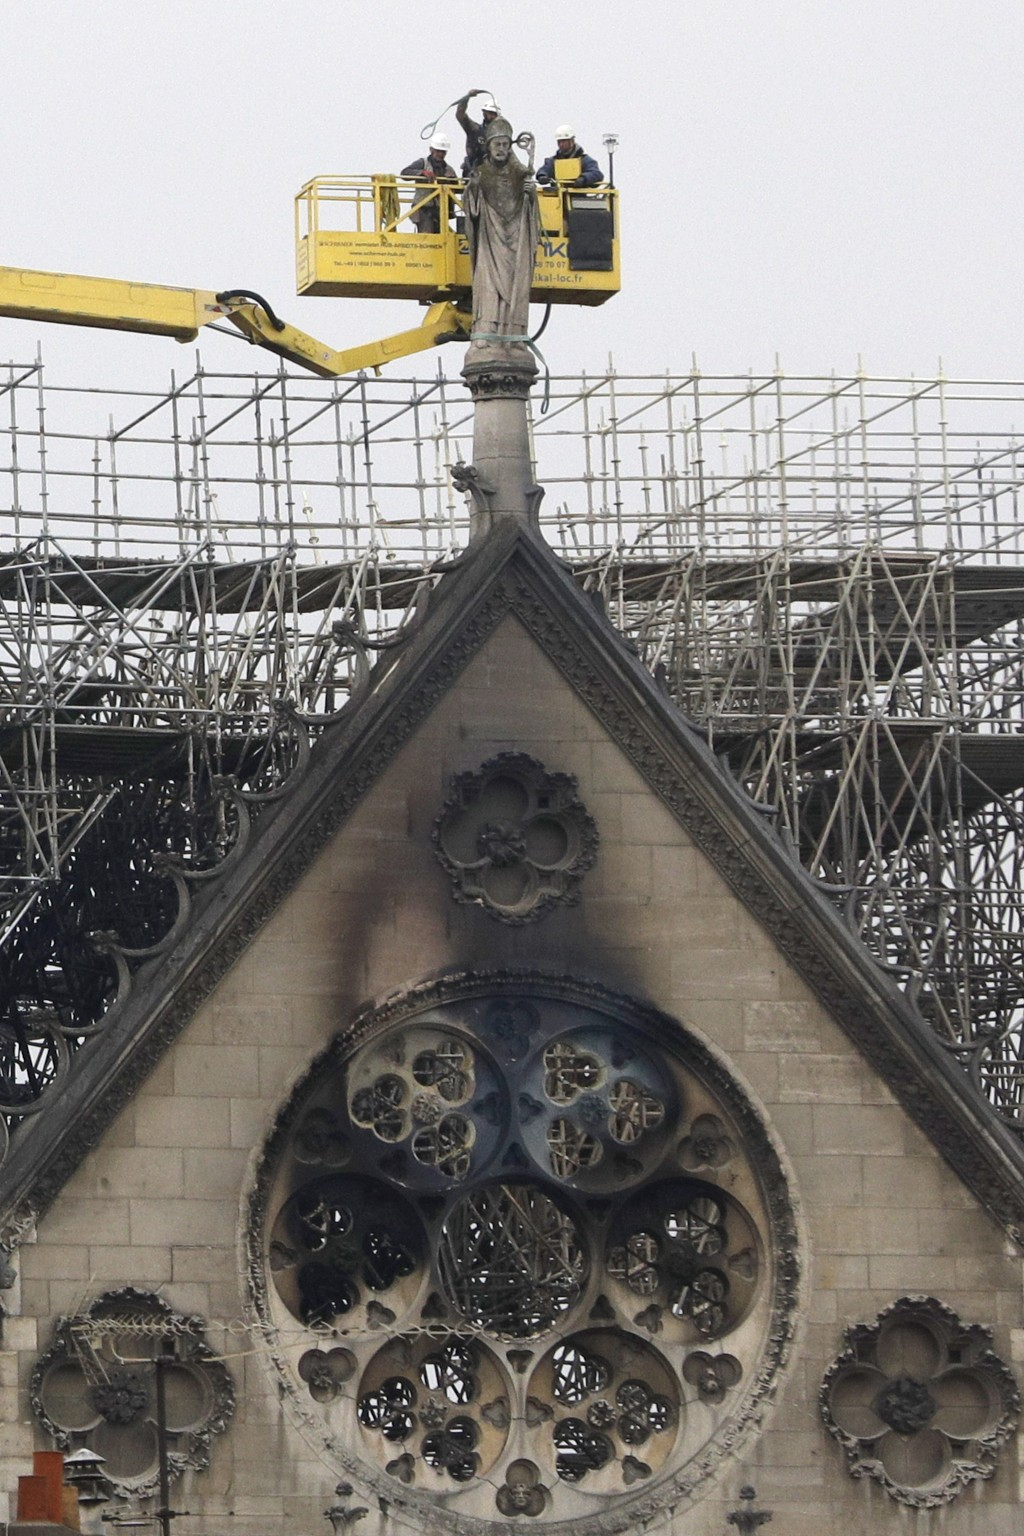 Experts prepare to lift a statue from the damaged Notre Dame cathedral after the fire in Paris, Tuesday, April 16, 2019. Experts are assessing the bla